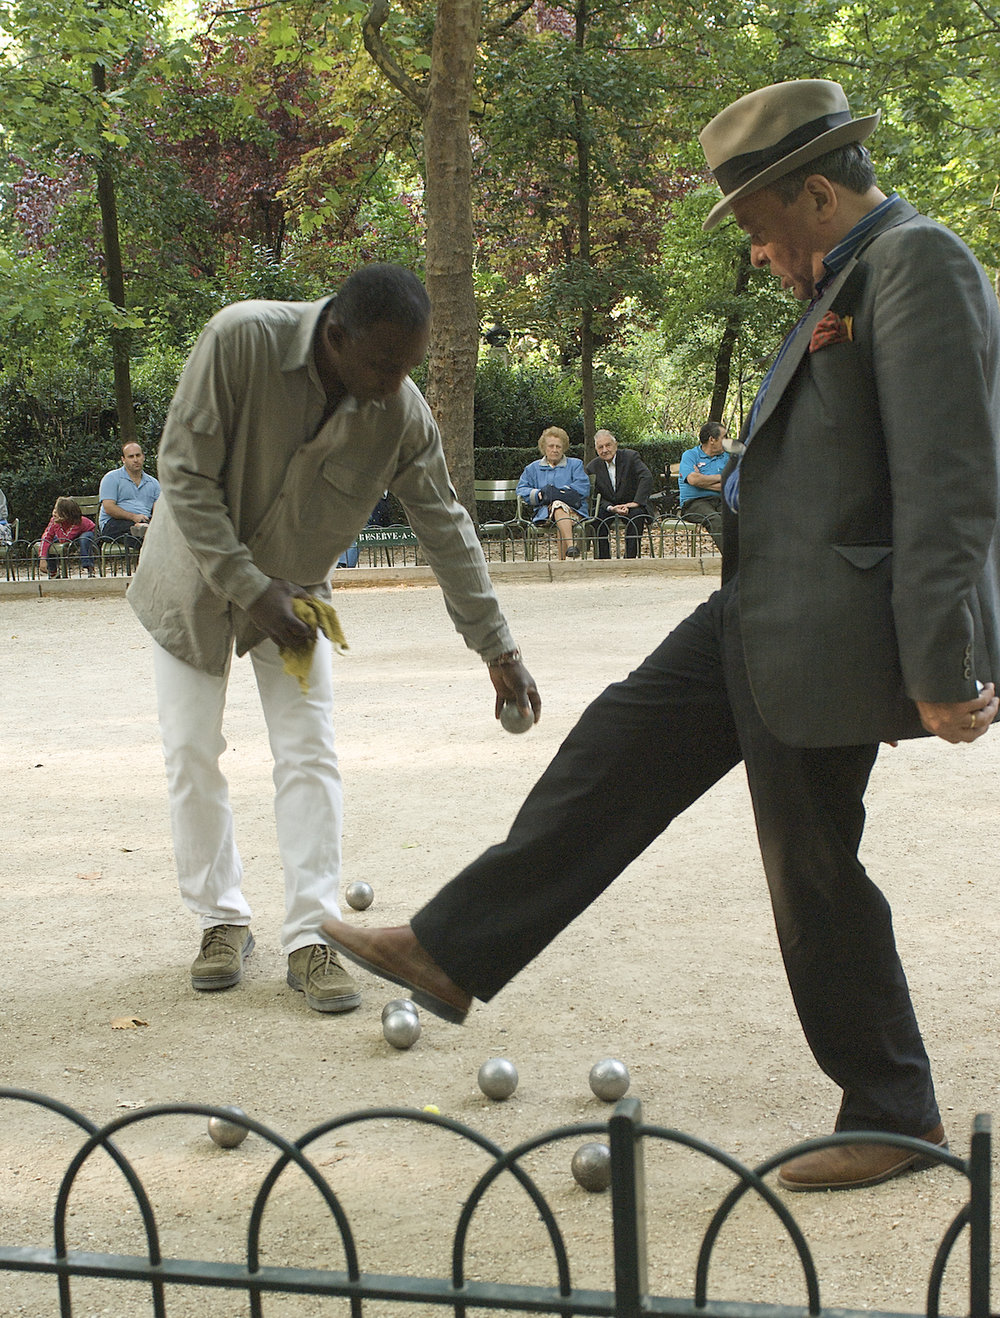 Men play petanque in Luxembourg Garden in Paris. Image by New Orleans based travel photographer, Marc Pagani - marcpagani.com.